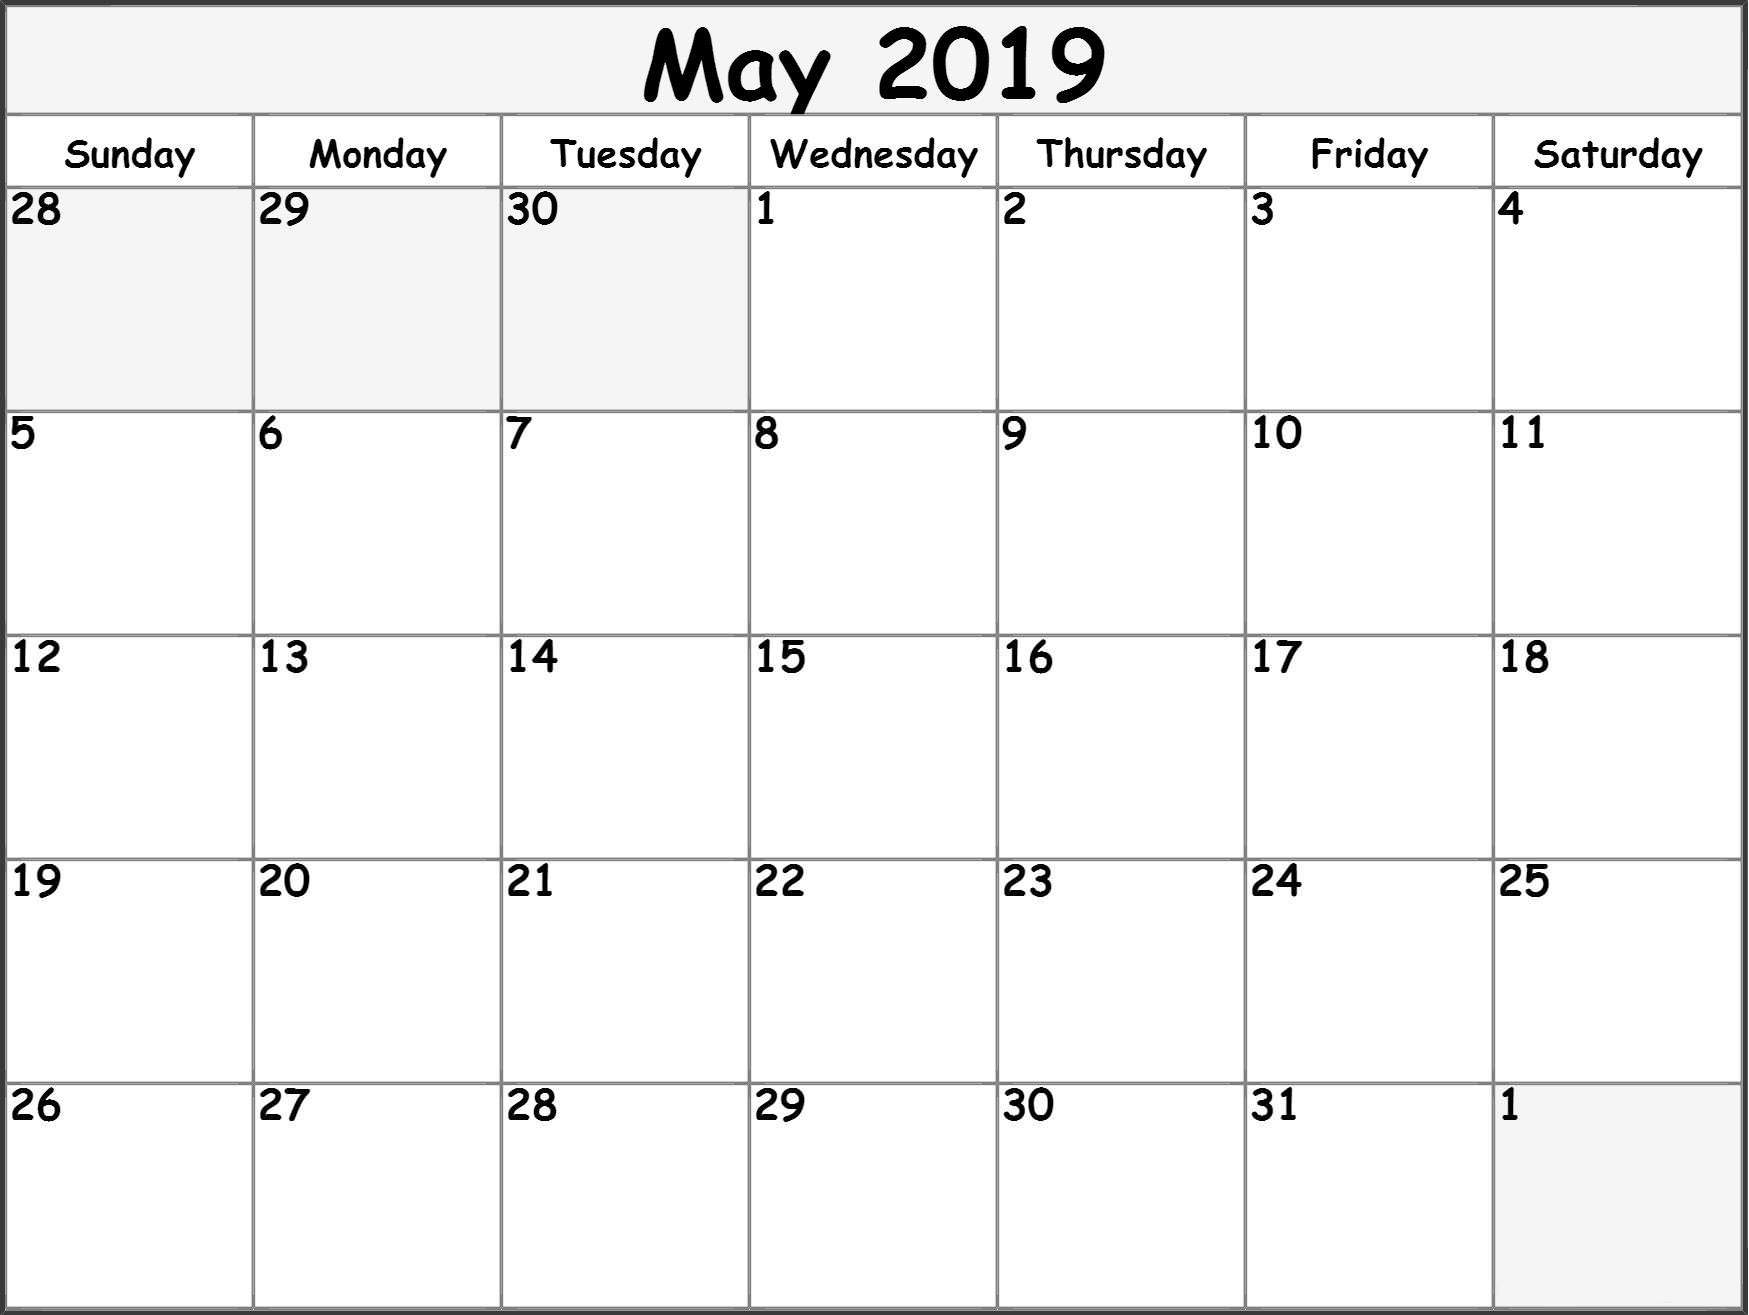 May 2019 Calendar, May 2019 Printable Calendar, 2019 Monthly Calendar, Monthly Calendar 2019, Printable Monthly Calendar, Monthly 2019 Calendar Templates